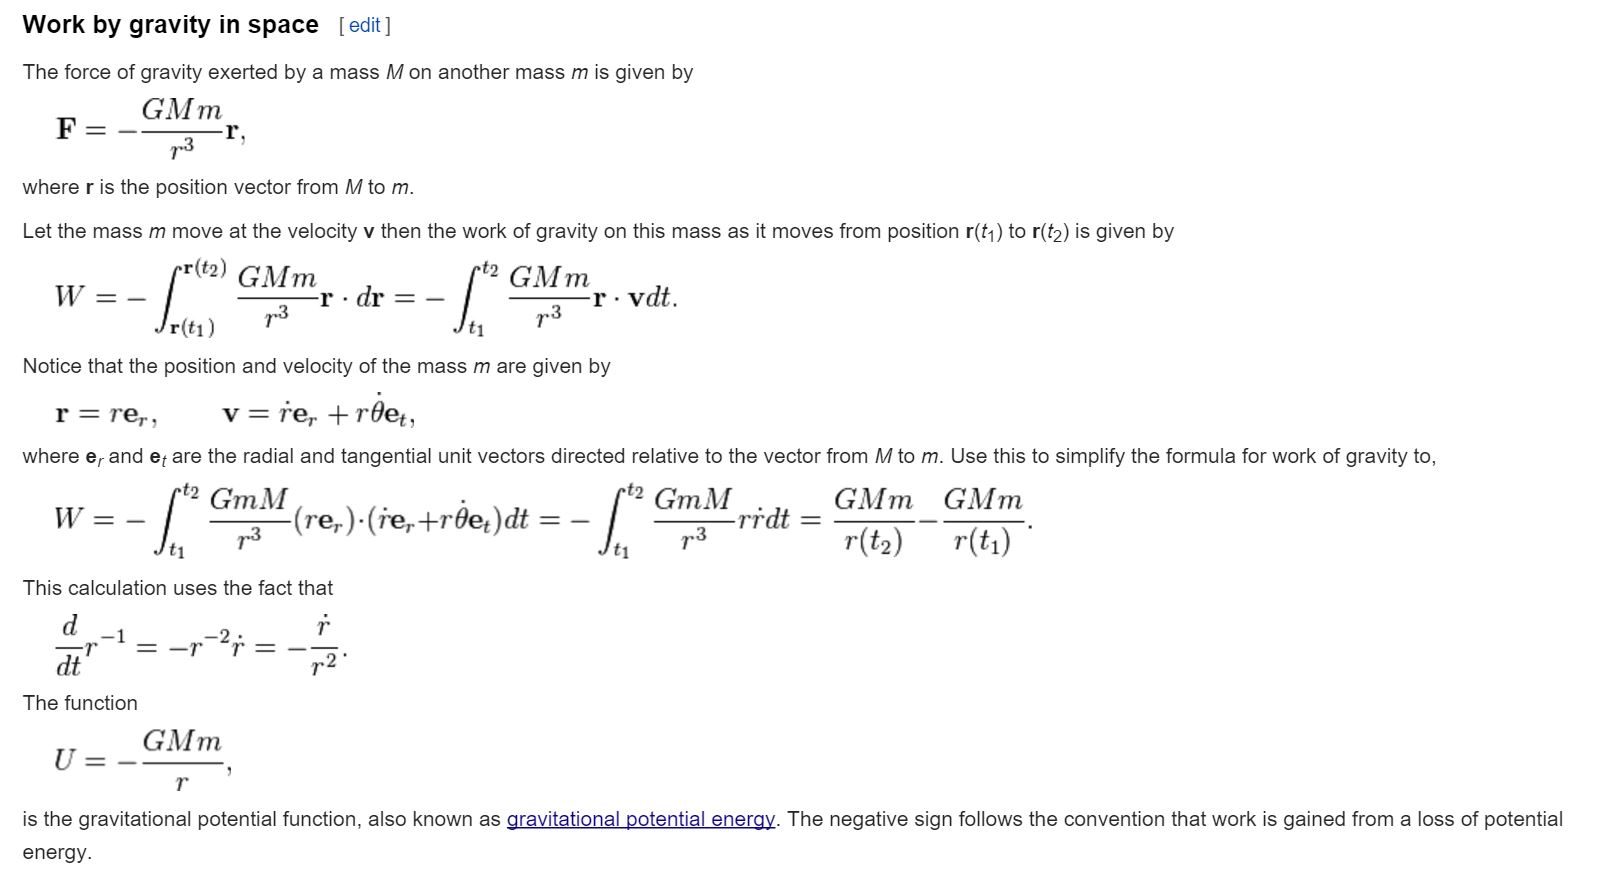 What Is The Equation Used To Calculate Gravitational Potential Energy